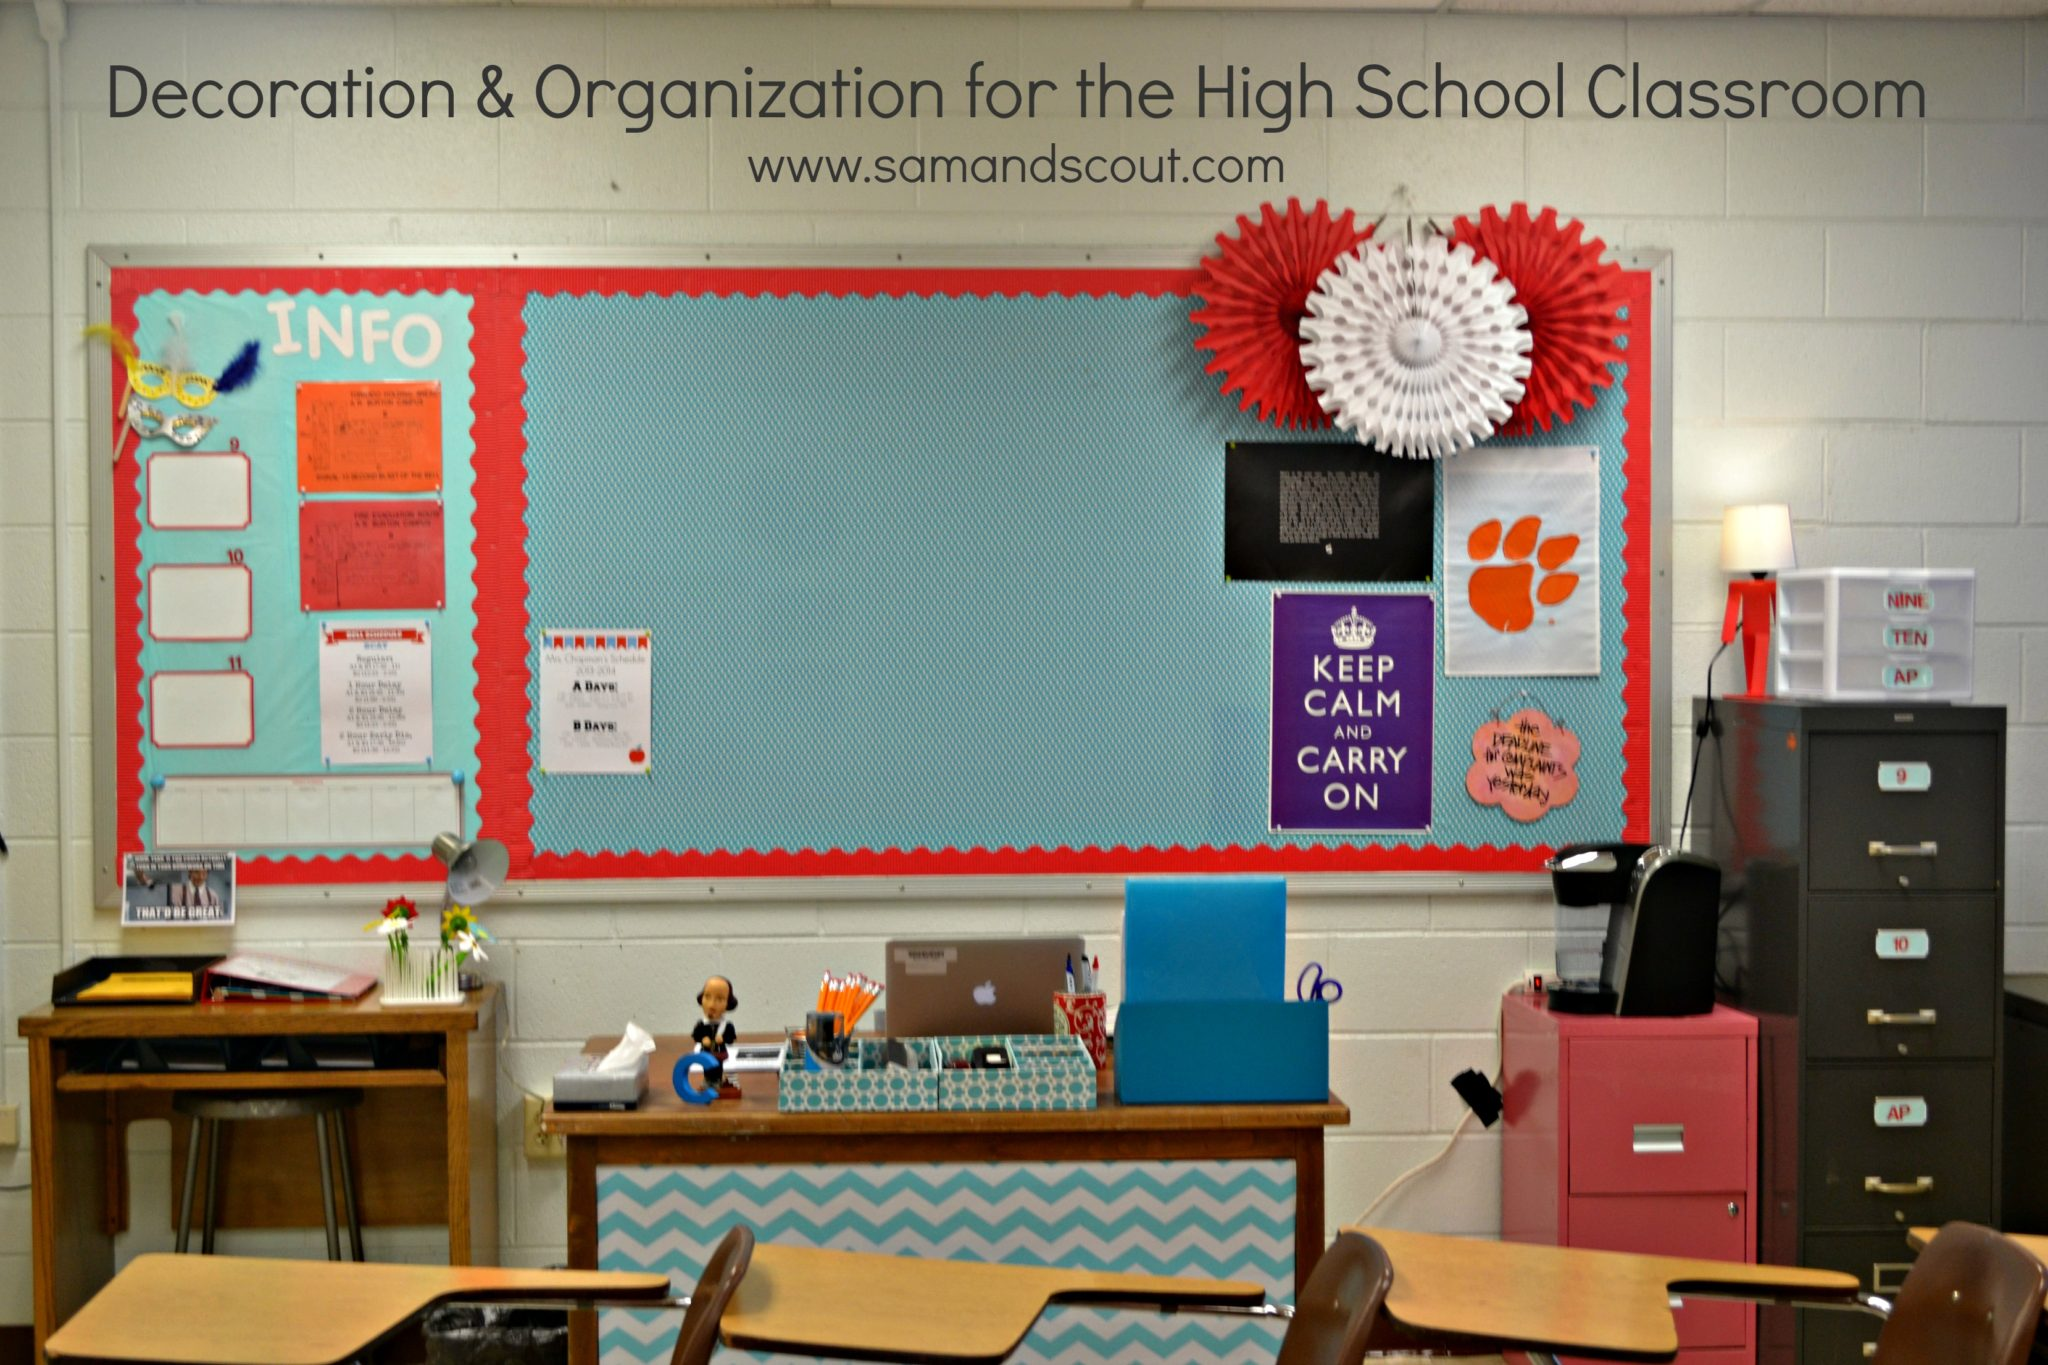 Classroom Whiteboard Decoration ~ Decoration organization for the high school classroom